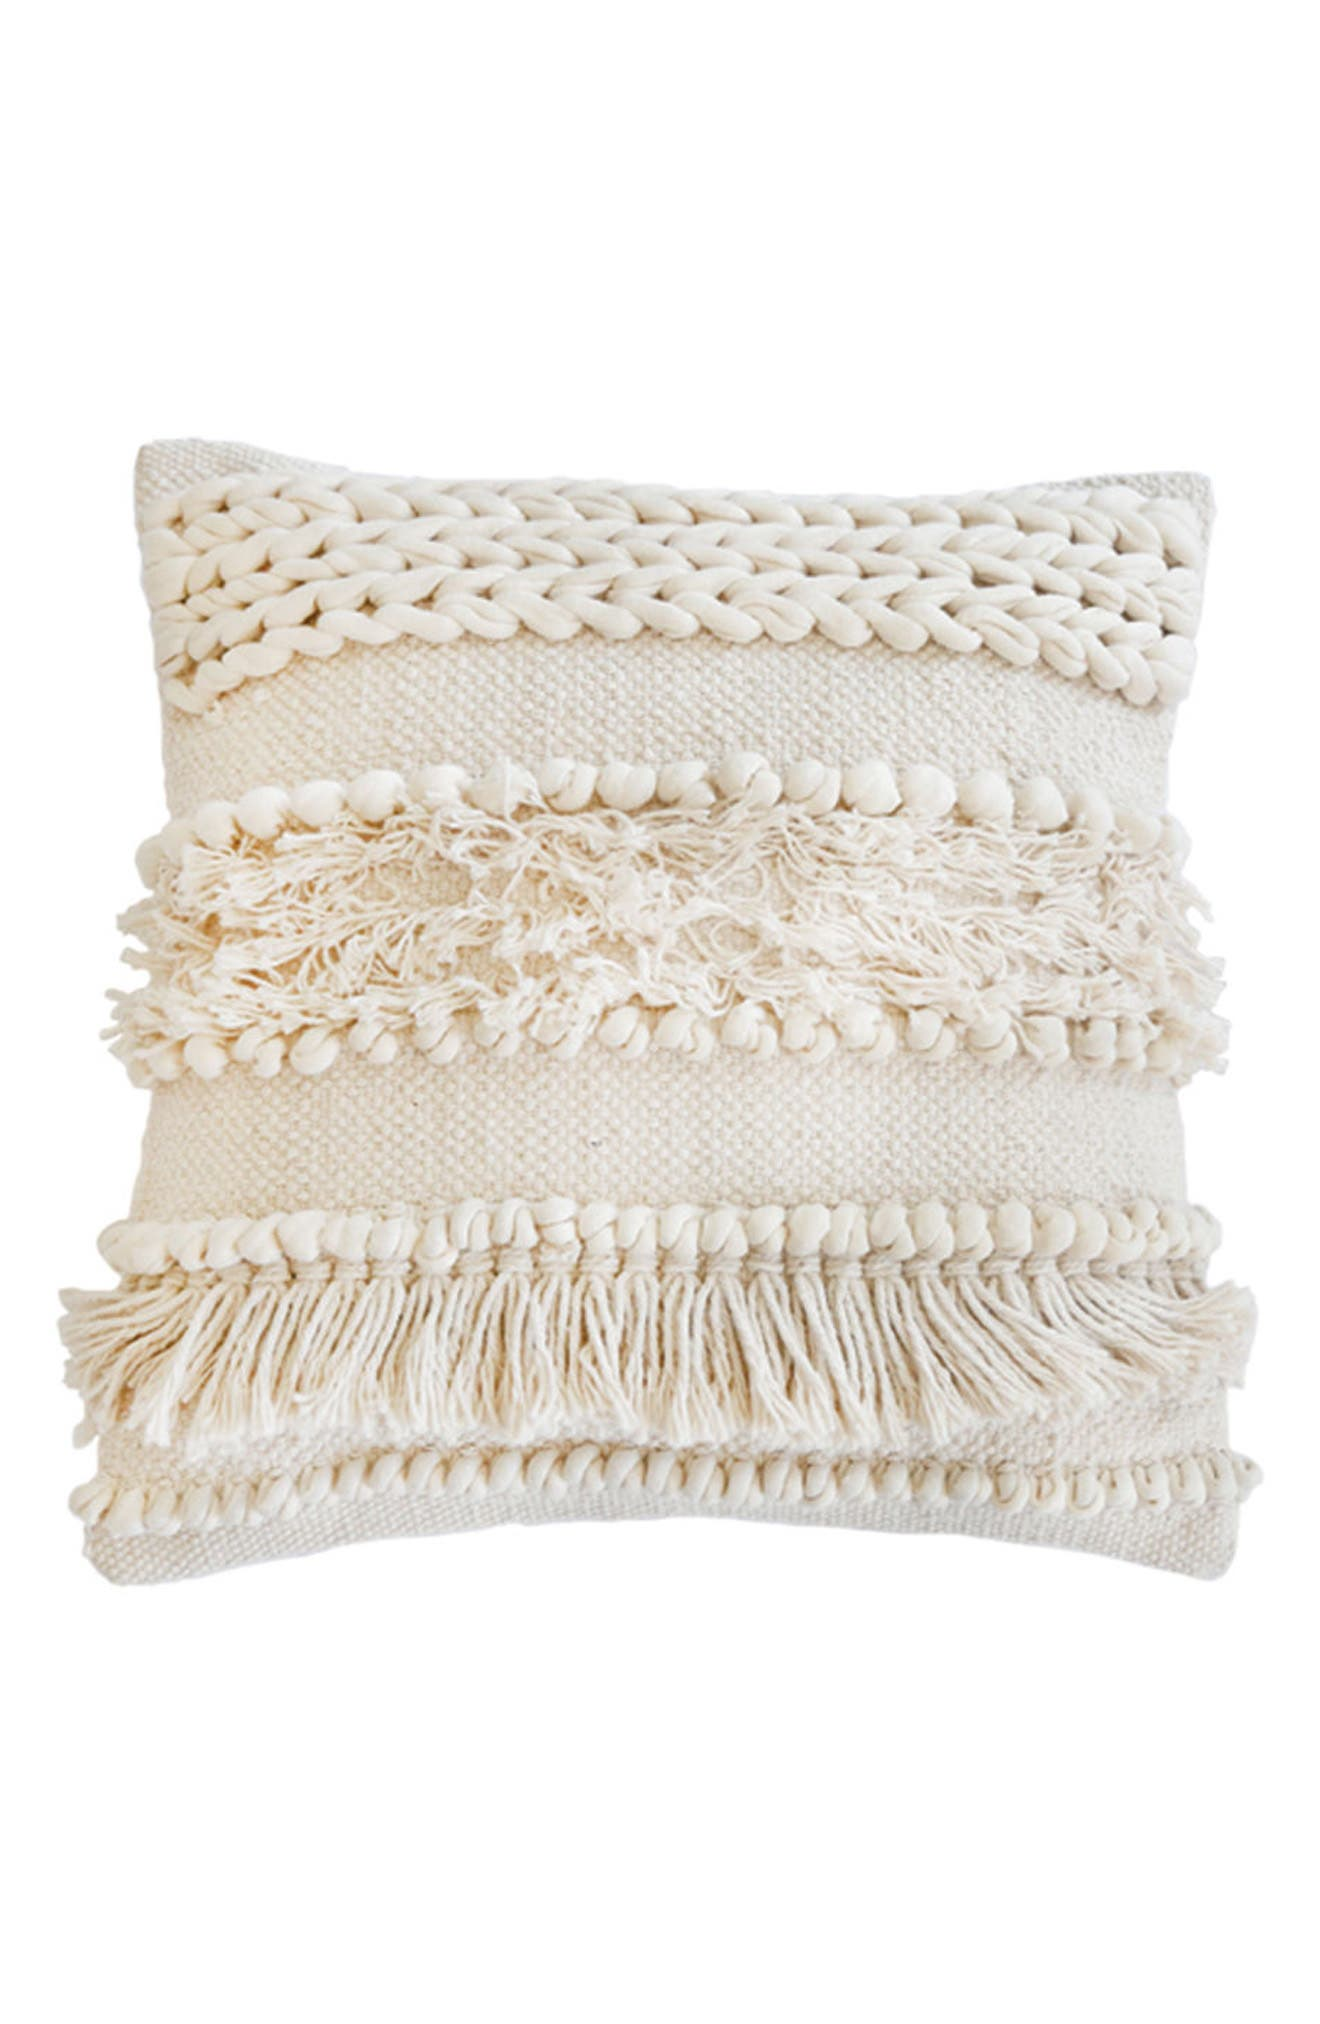 Iman Accent Pillow,                             Main thumbnail 1, color,                             Ivory